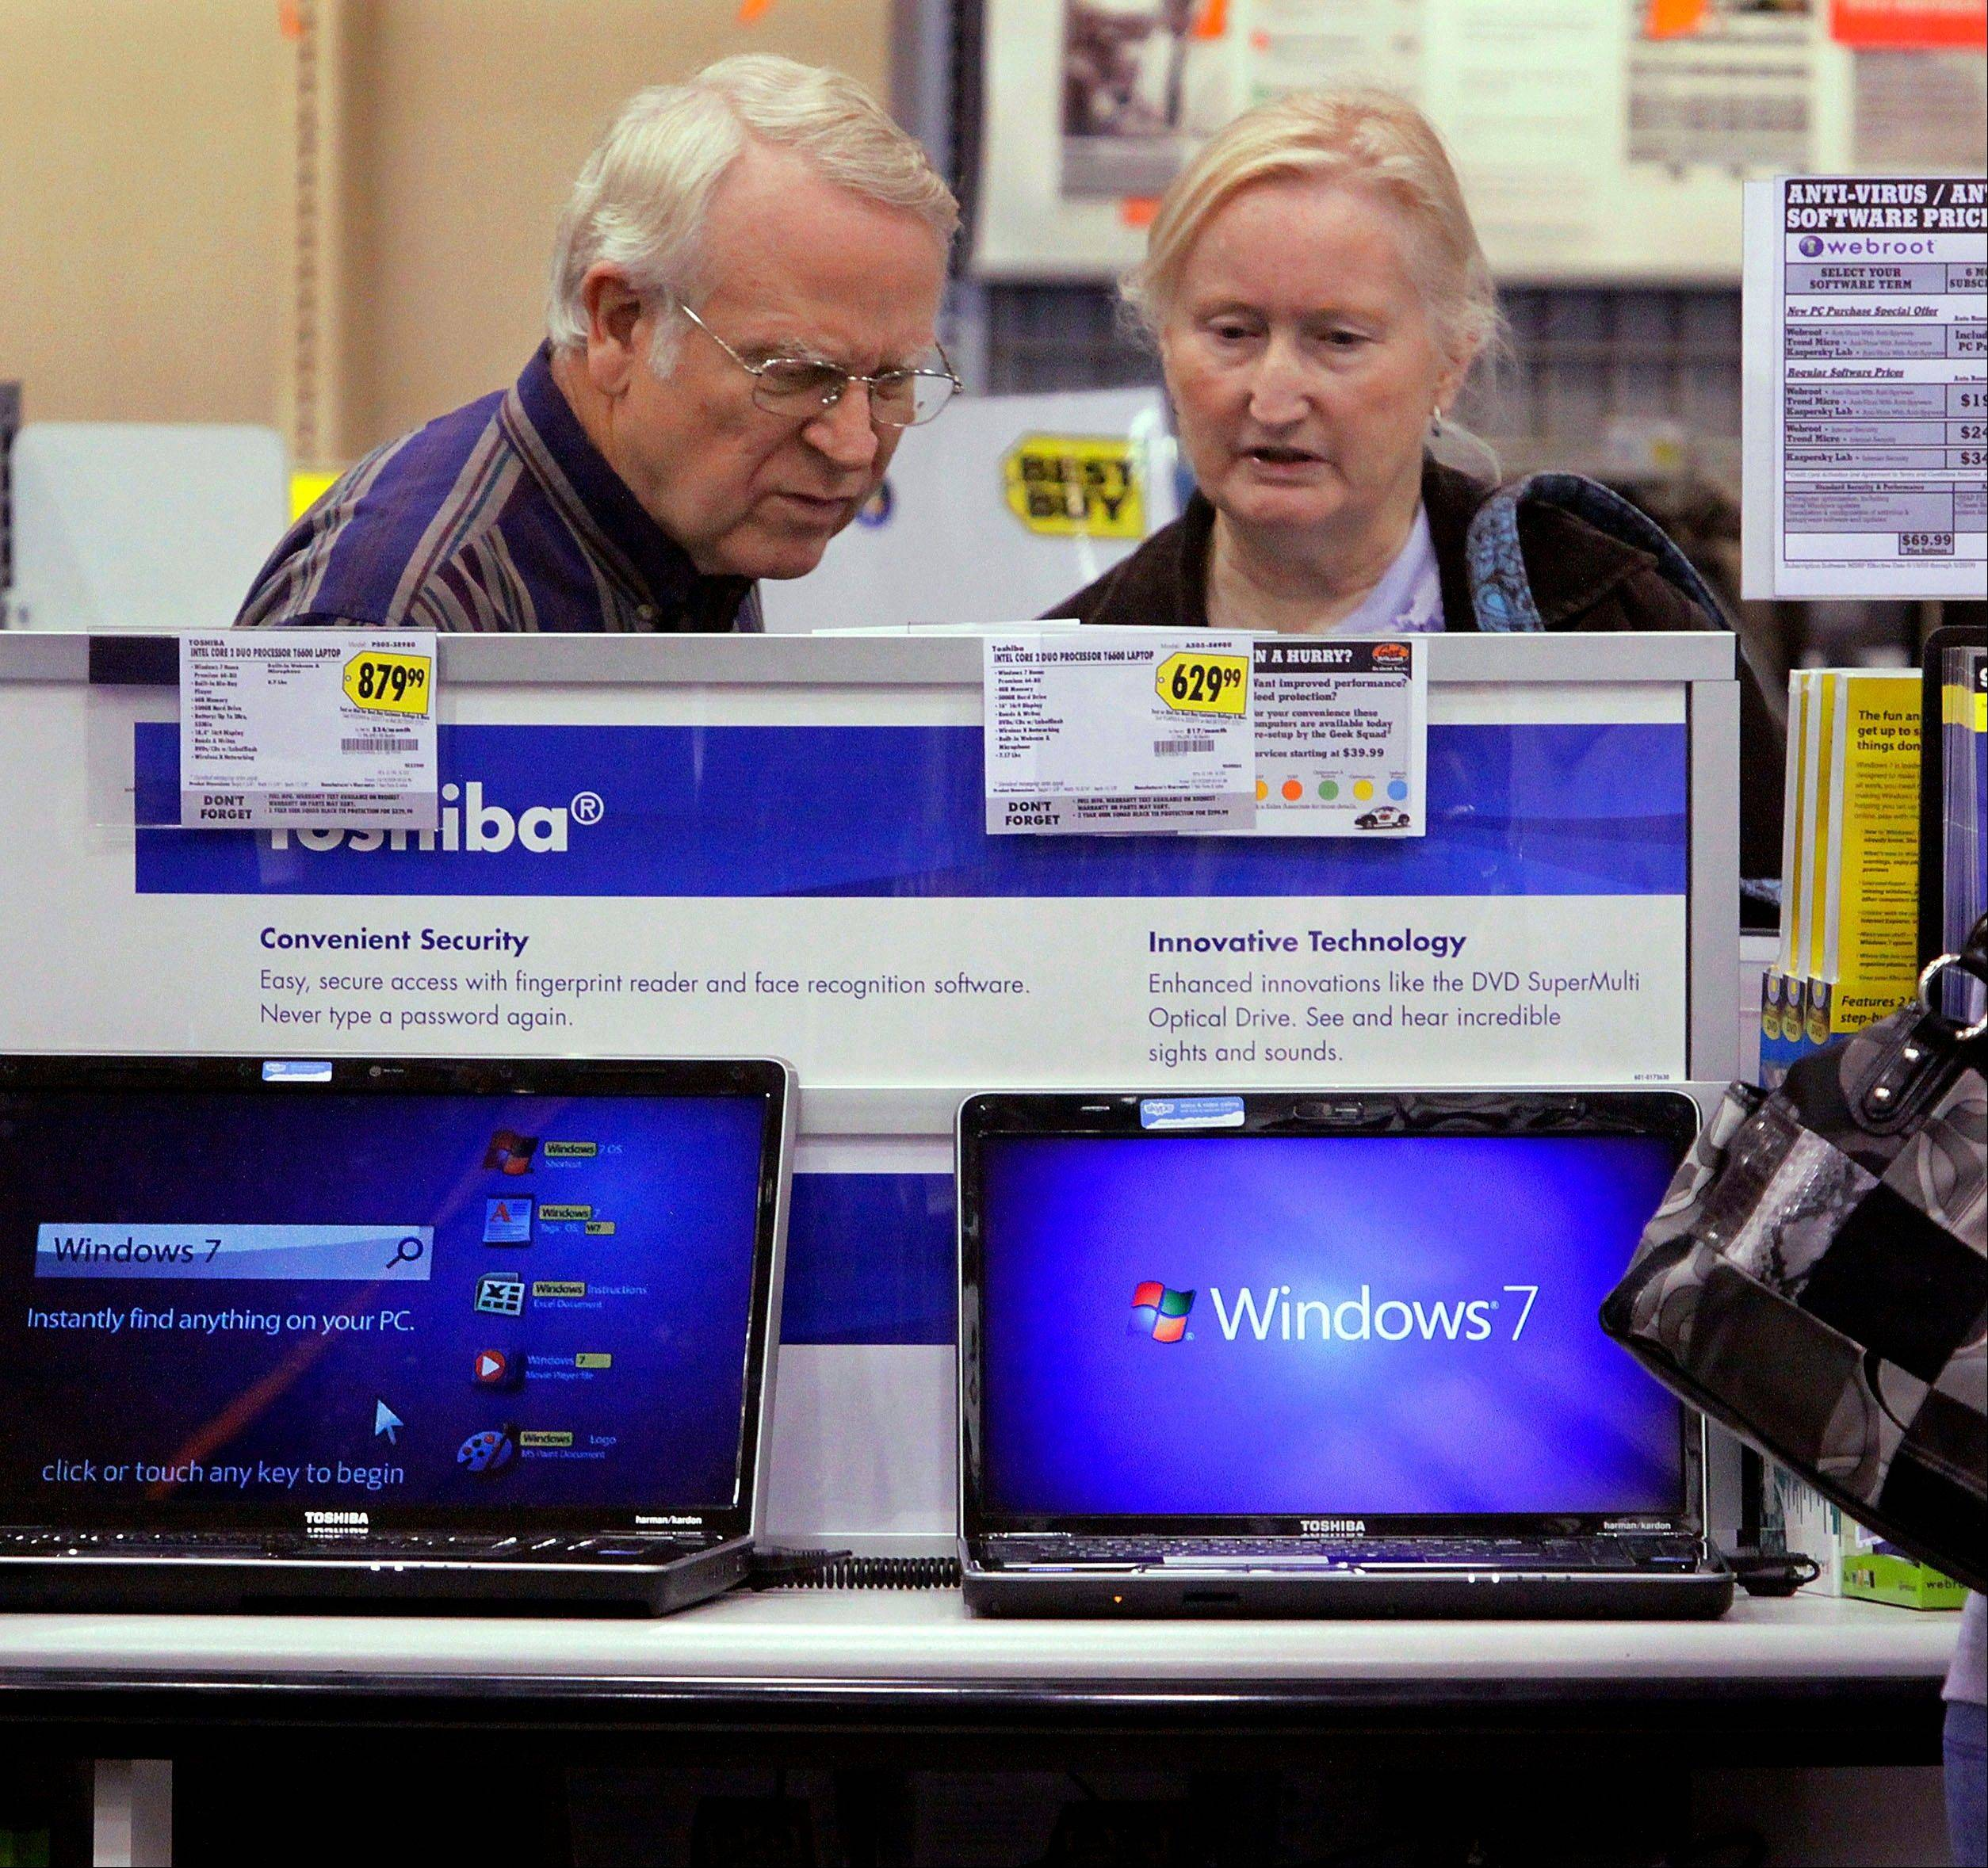 Computer shoppers read through options and compare prices at a Best Buy in Springfield. after Microsoft launched Windows 7. Best Buy is hoping to capitalize on the launch of Windows 8. It's trying to lure customers with exclusive computers and staffers trained to explain and demonstrate the new operating system from Microsoft Corp.